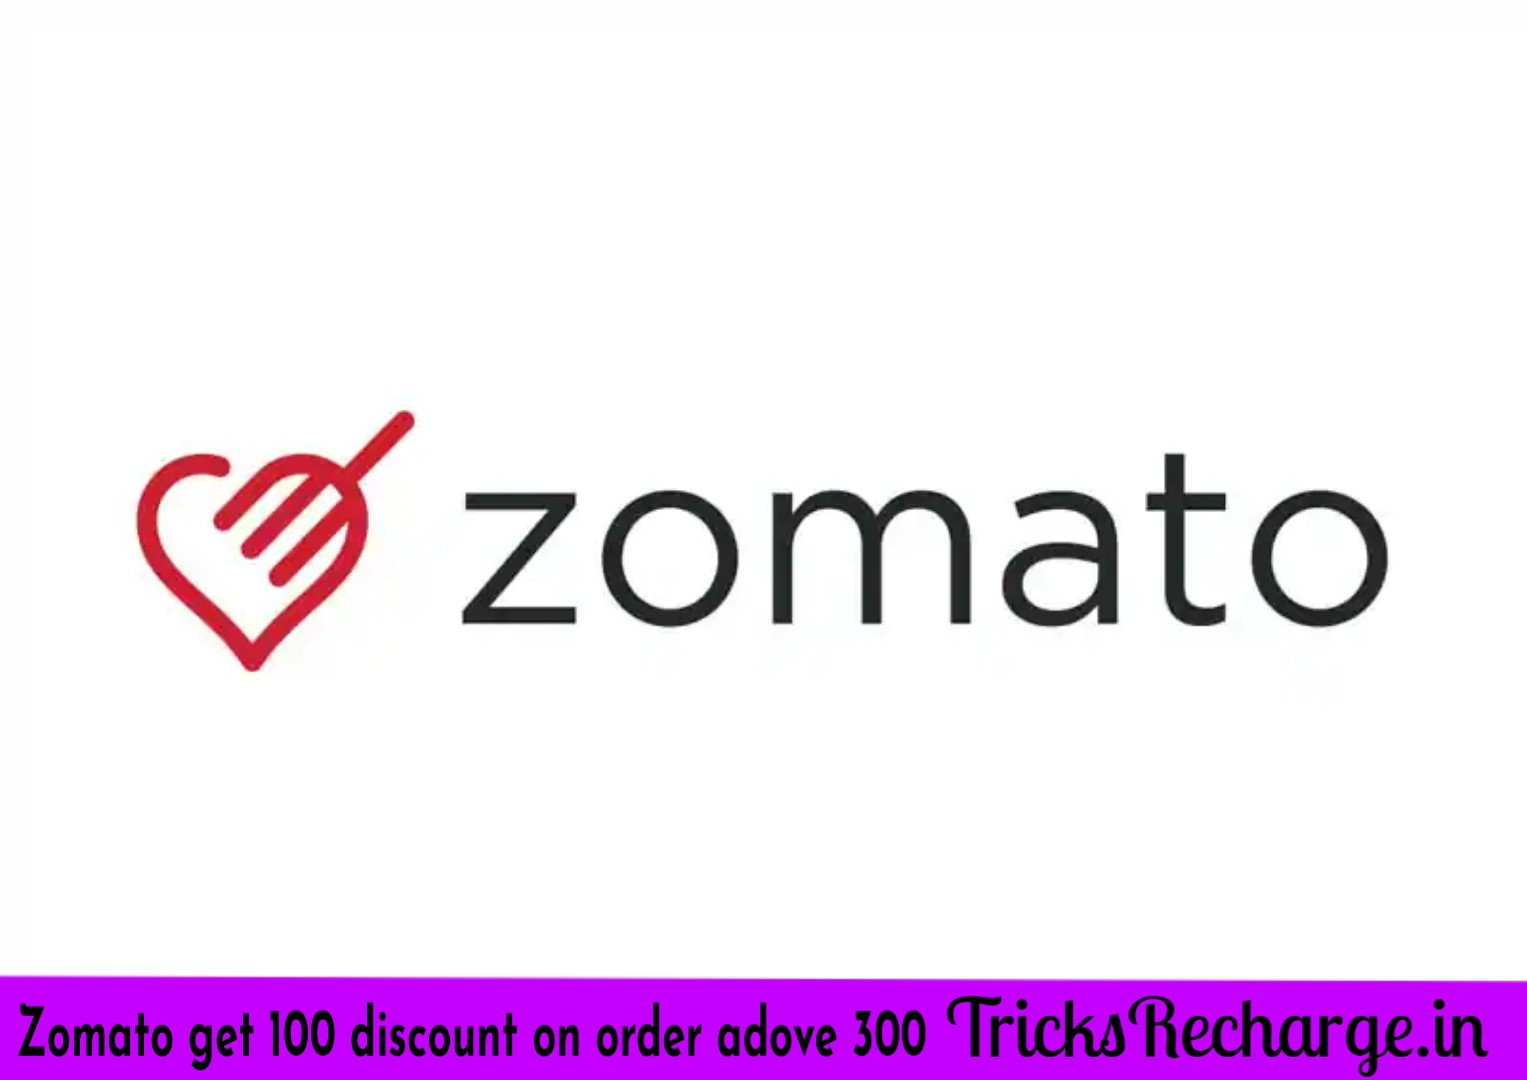 Zomato Offer: Get a discount of 100 Rs on your order over 300 RS or more